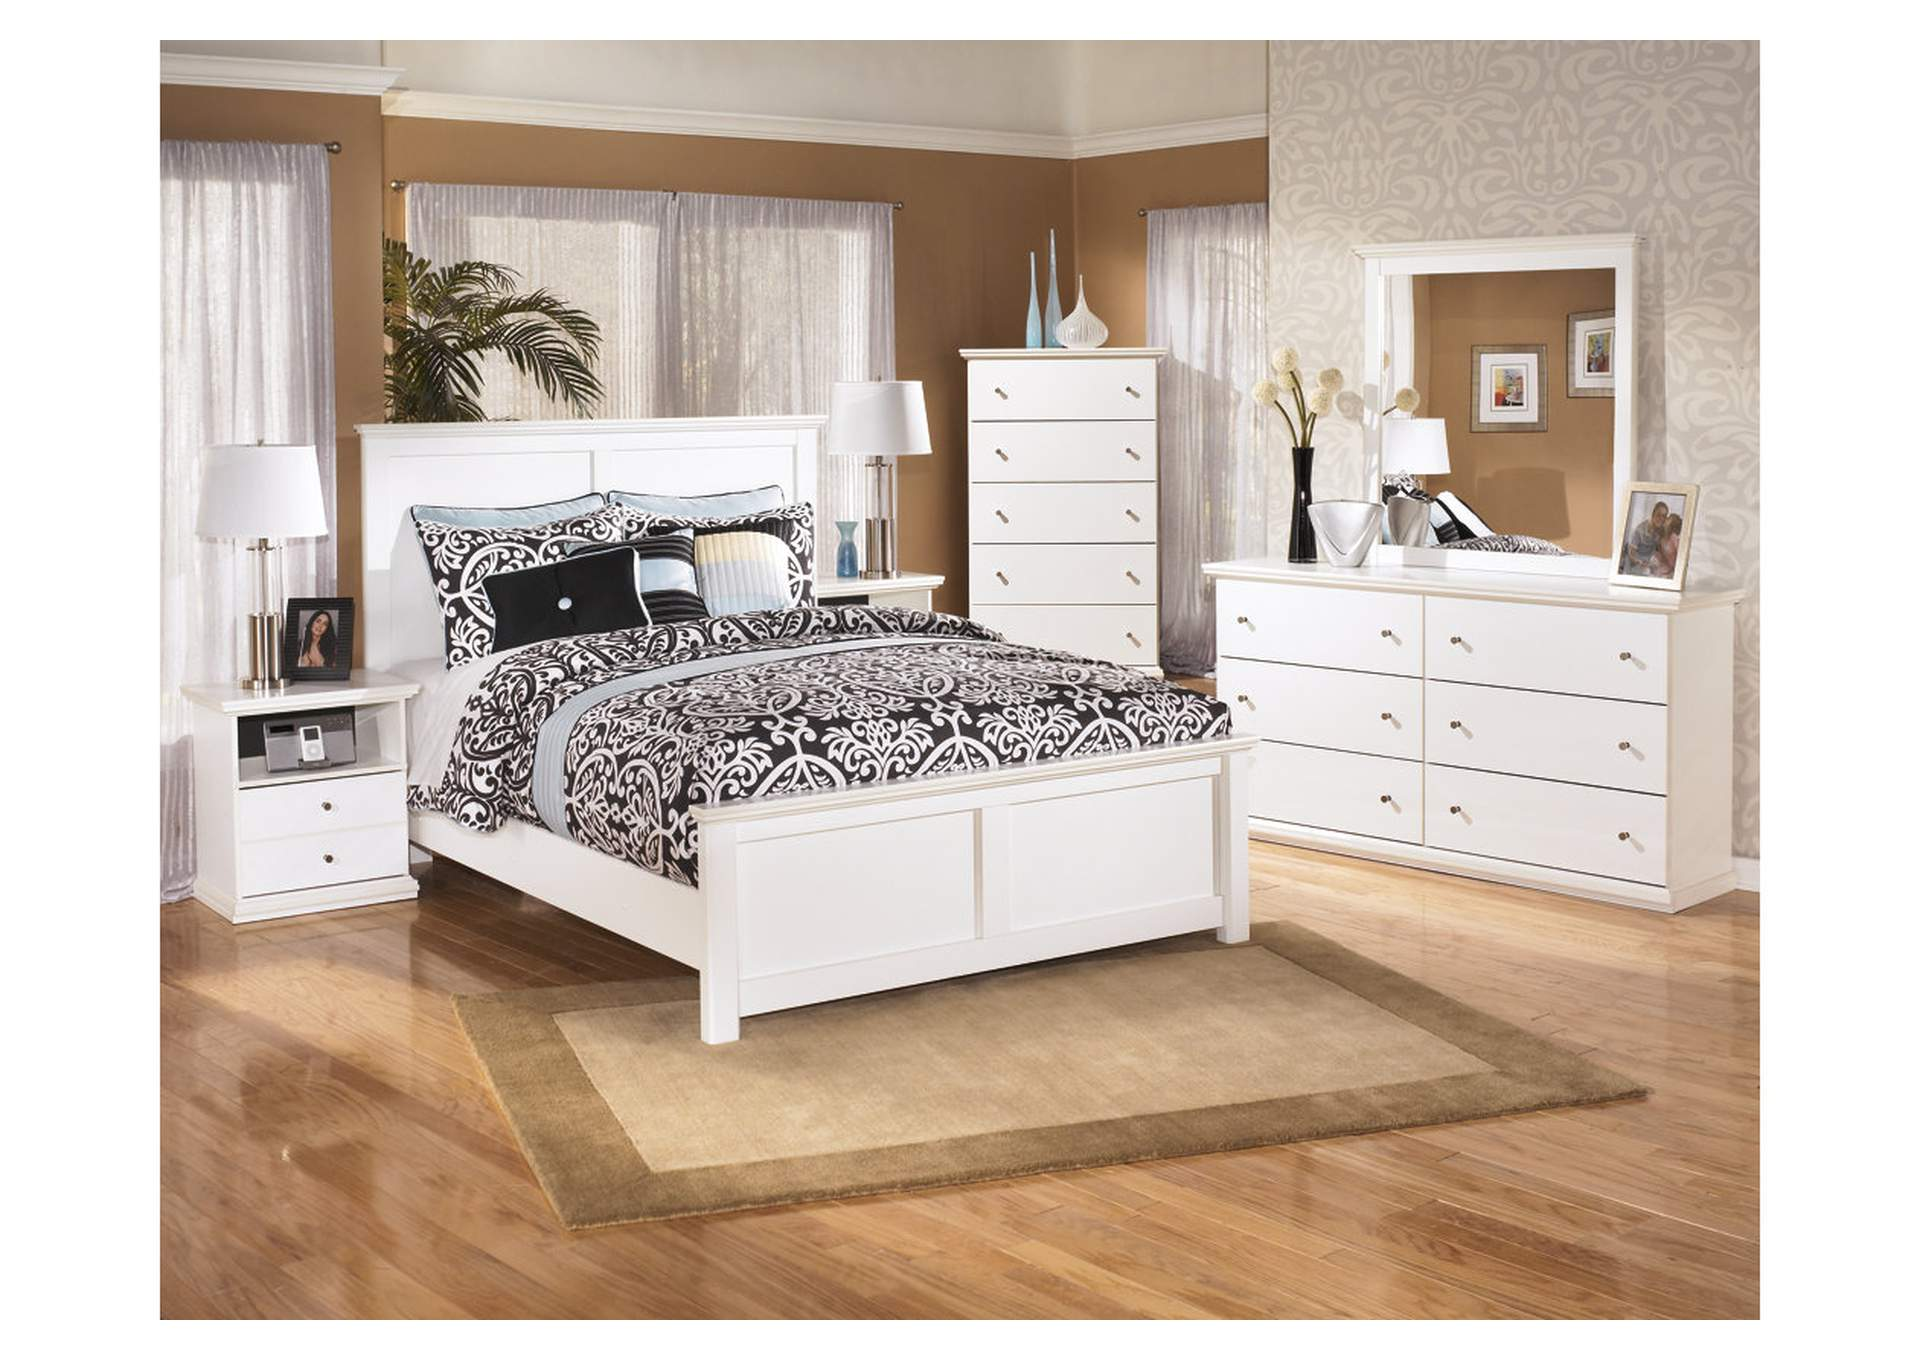 Bostwick Shoals Queen Panel Bed w/Dresser, Mirror, Drawer Chest & Nightstand,Signature Design By Ashley